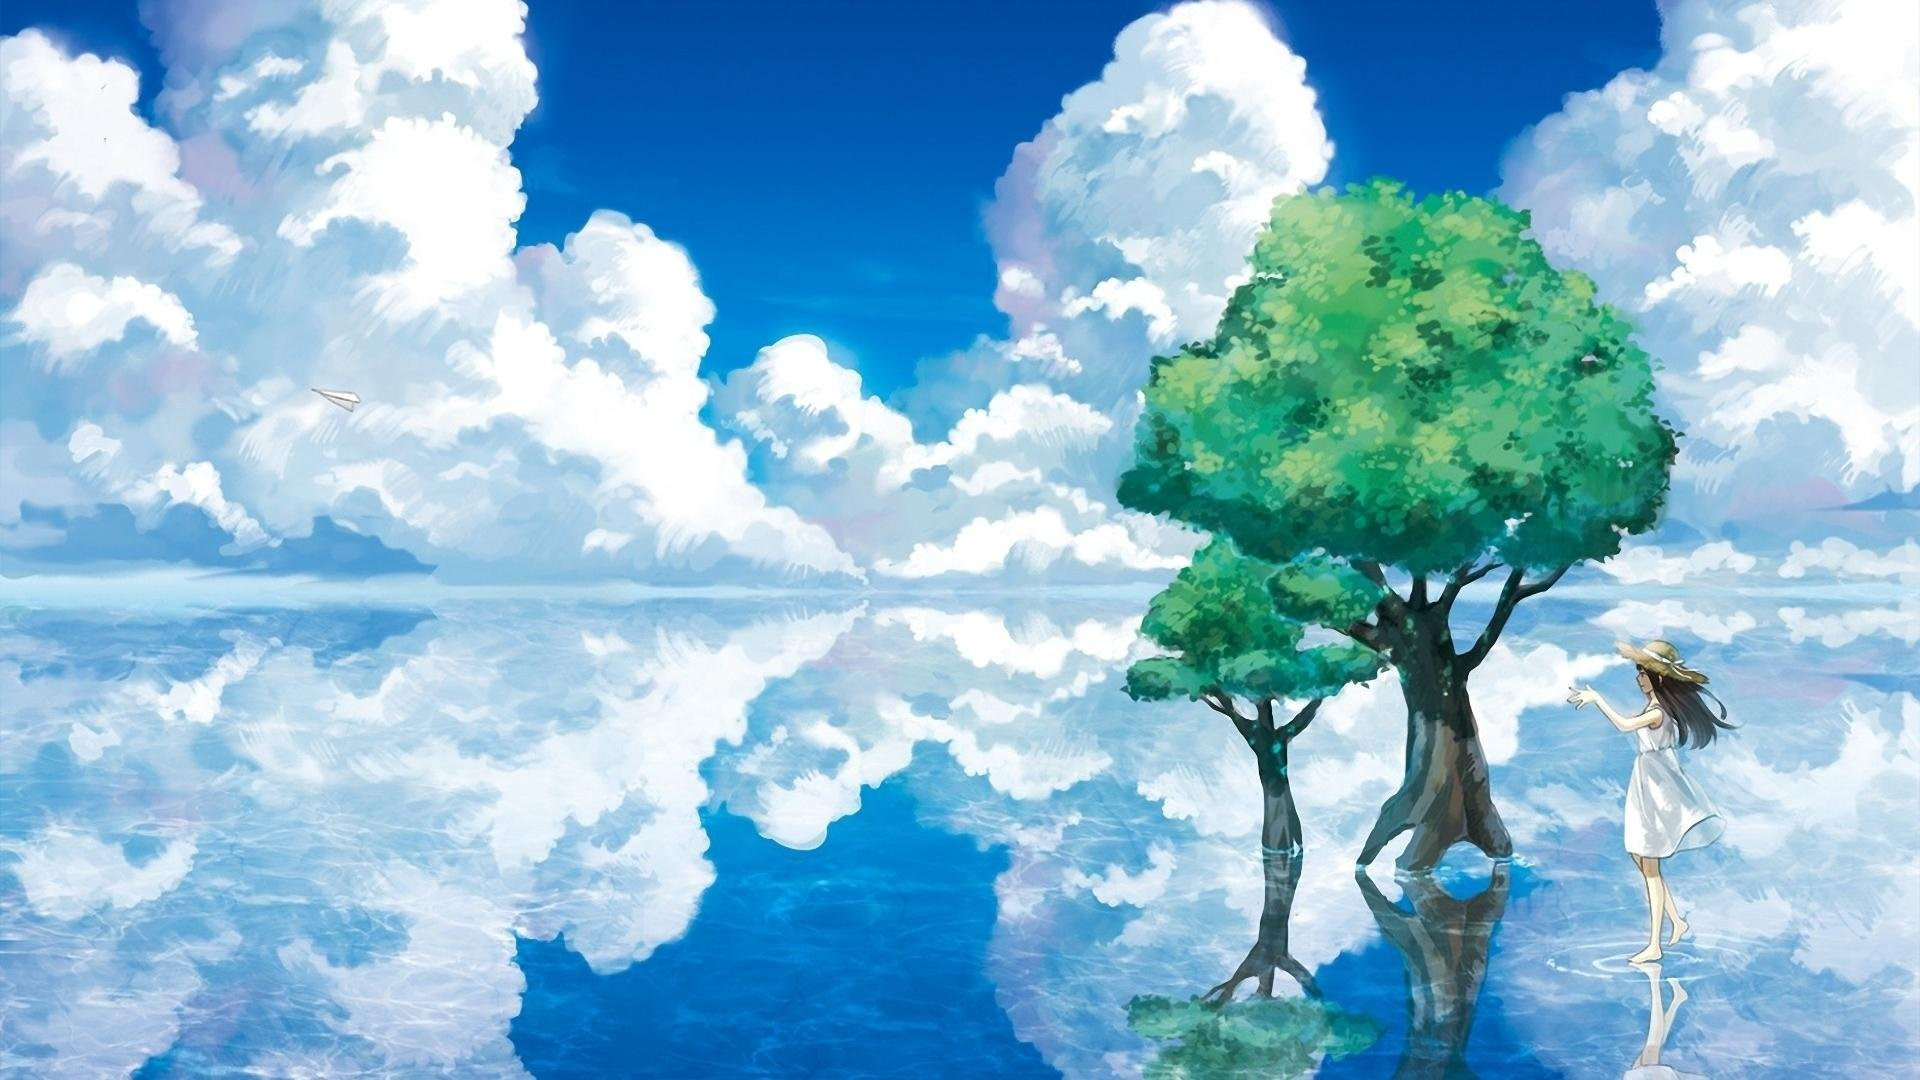 700 Wallpaper Hd Anime Nature  Terbaik